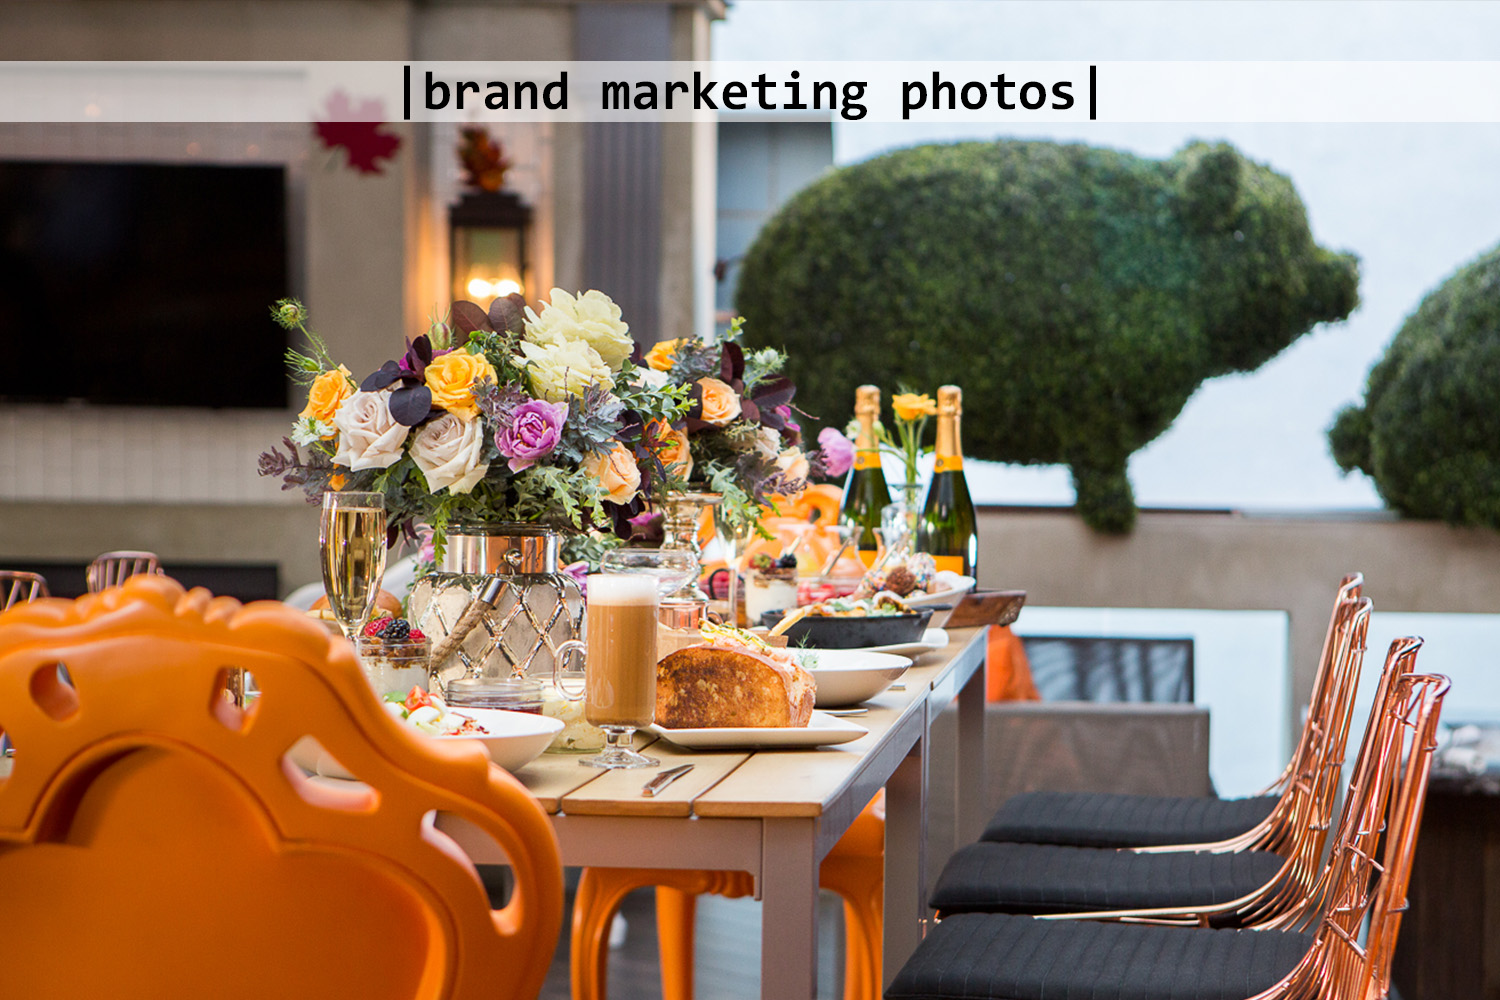 BrandMarketingPhotos